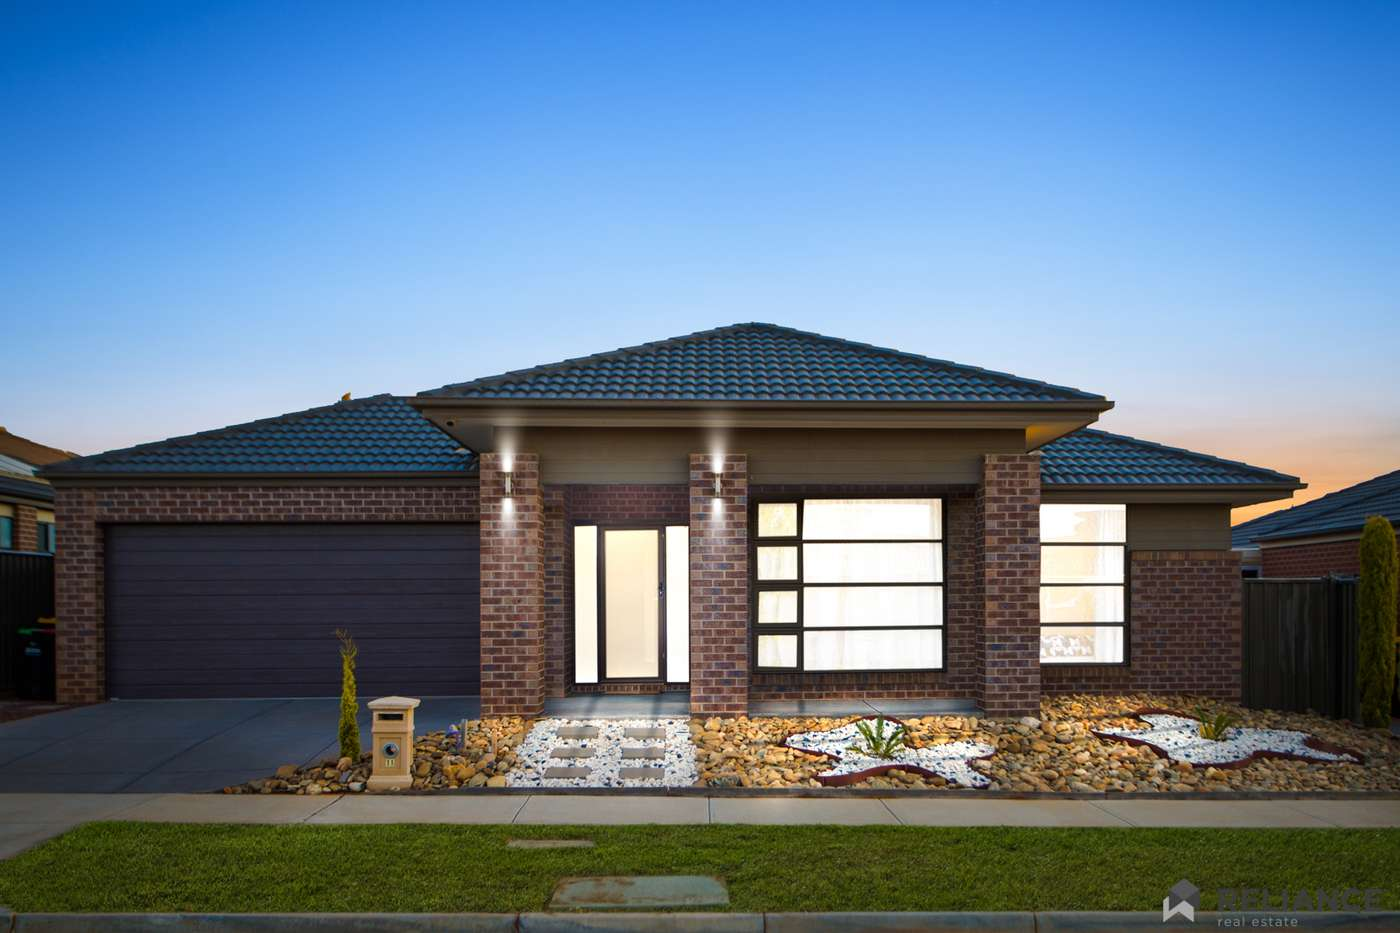 Main view of Homely house listing, 11 Amber Way, Melton South, VIC 3338